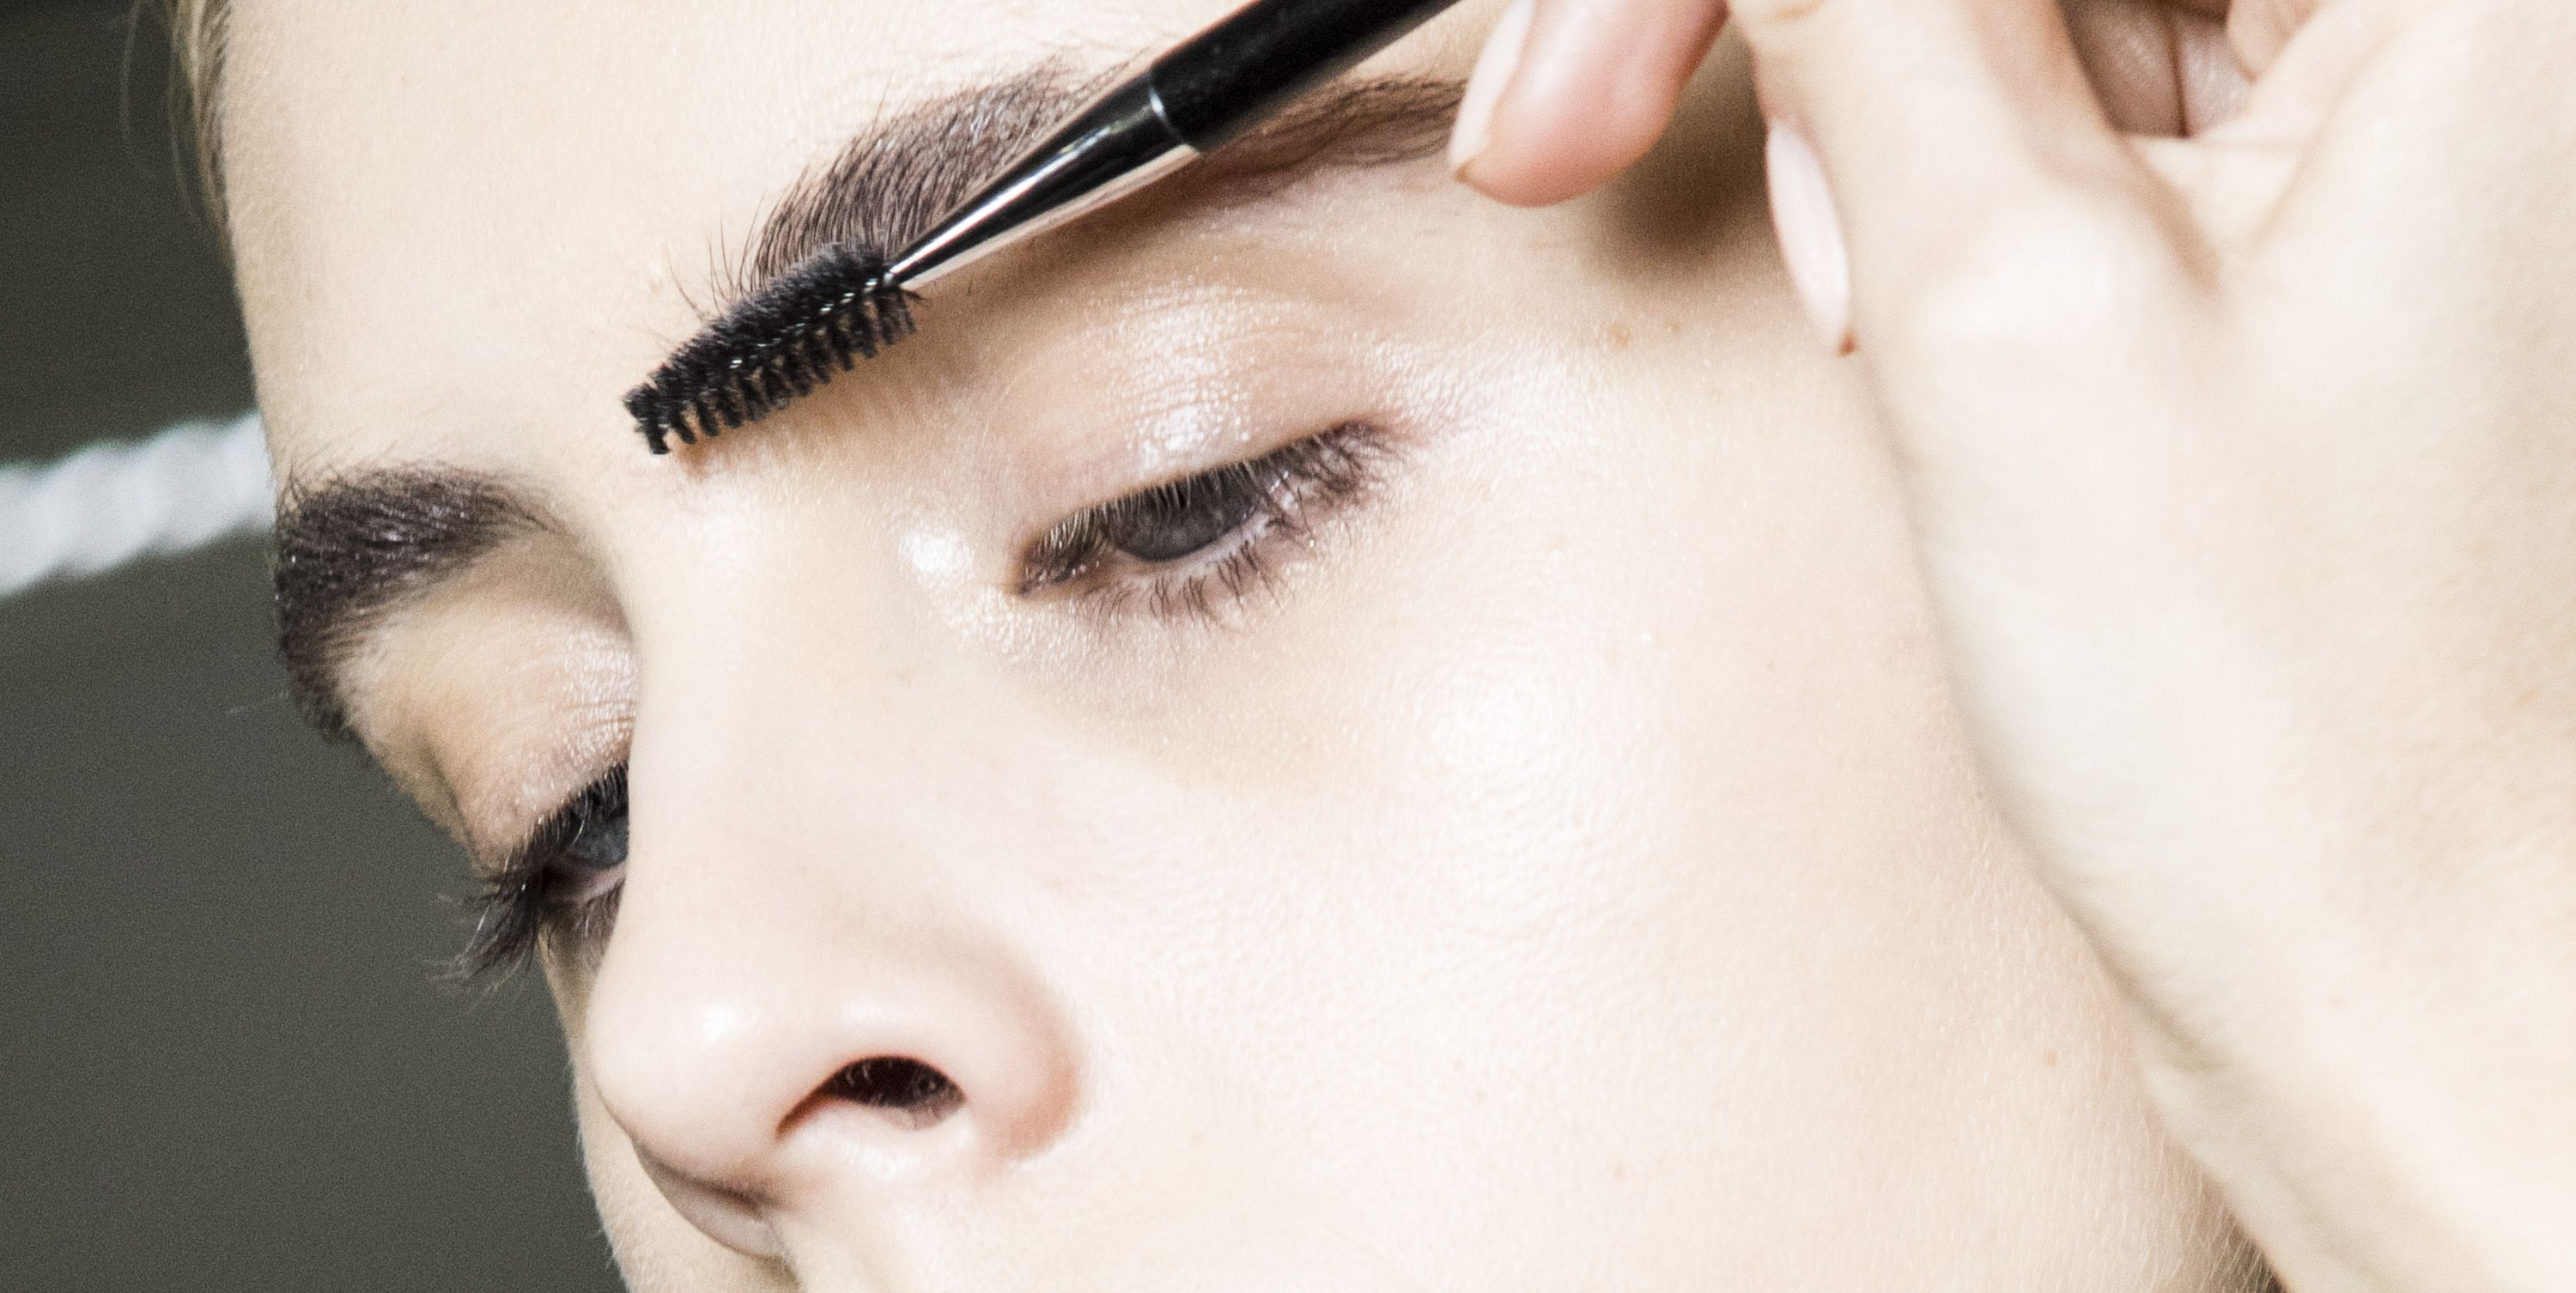 Reach your full brow potential.